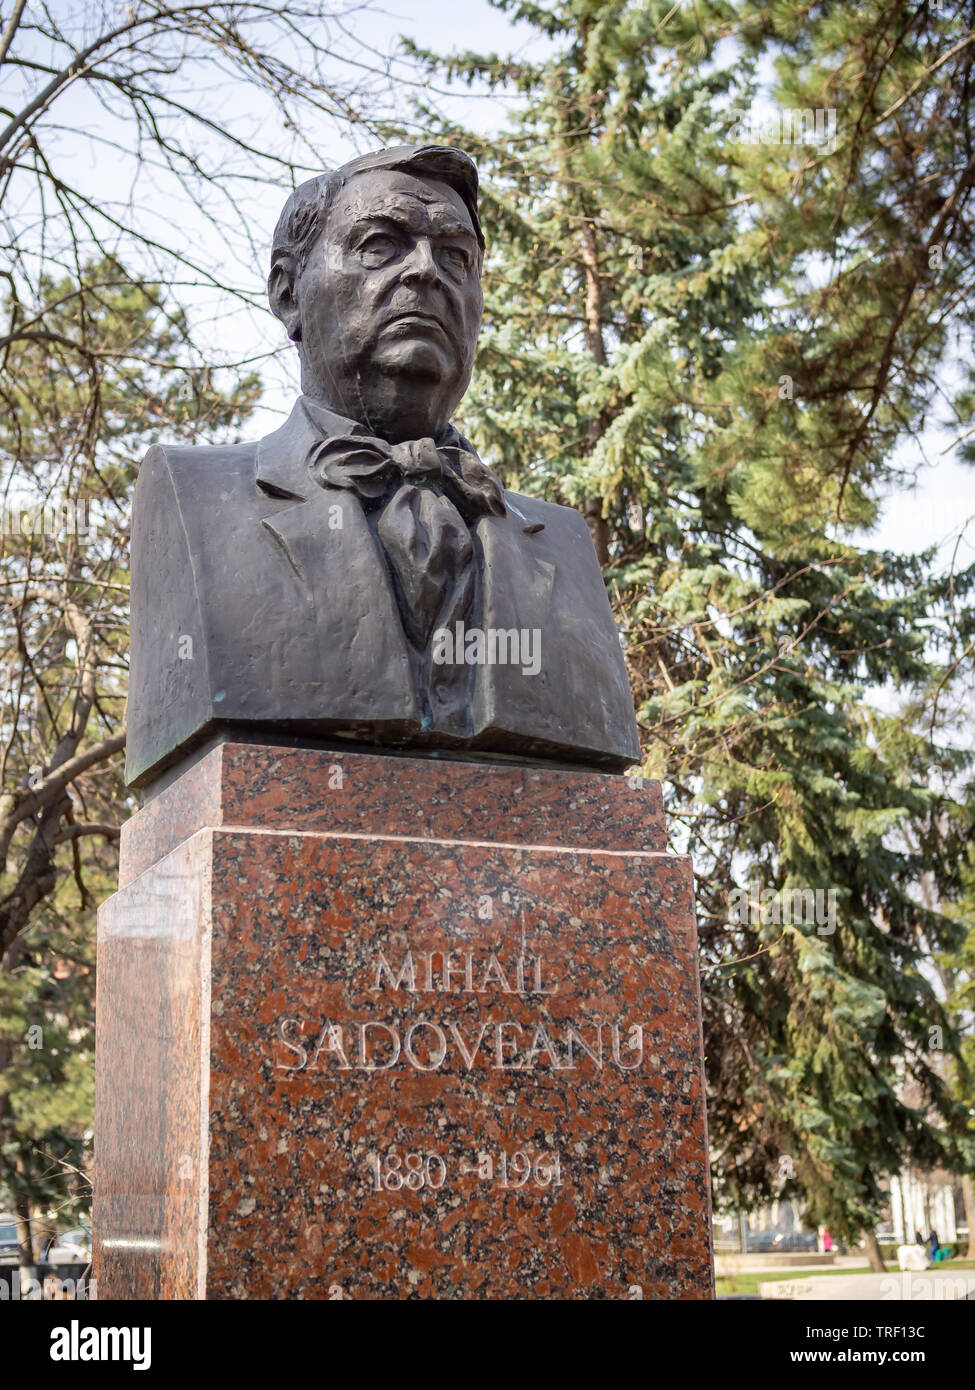 CHISINAU, MOLDOVA-MARCH 21, 2019: Mihail Sadoveanu bust in the Alley of Classics - Stock Image